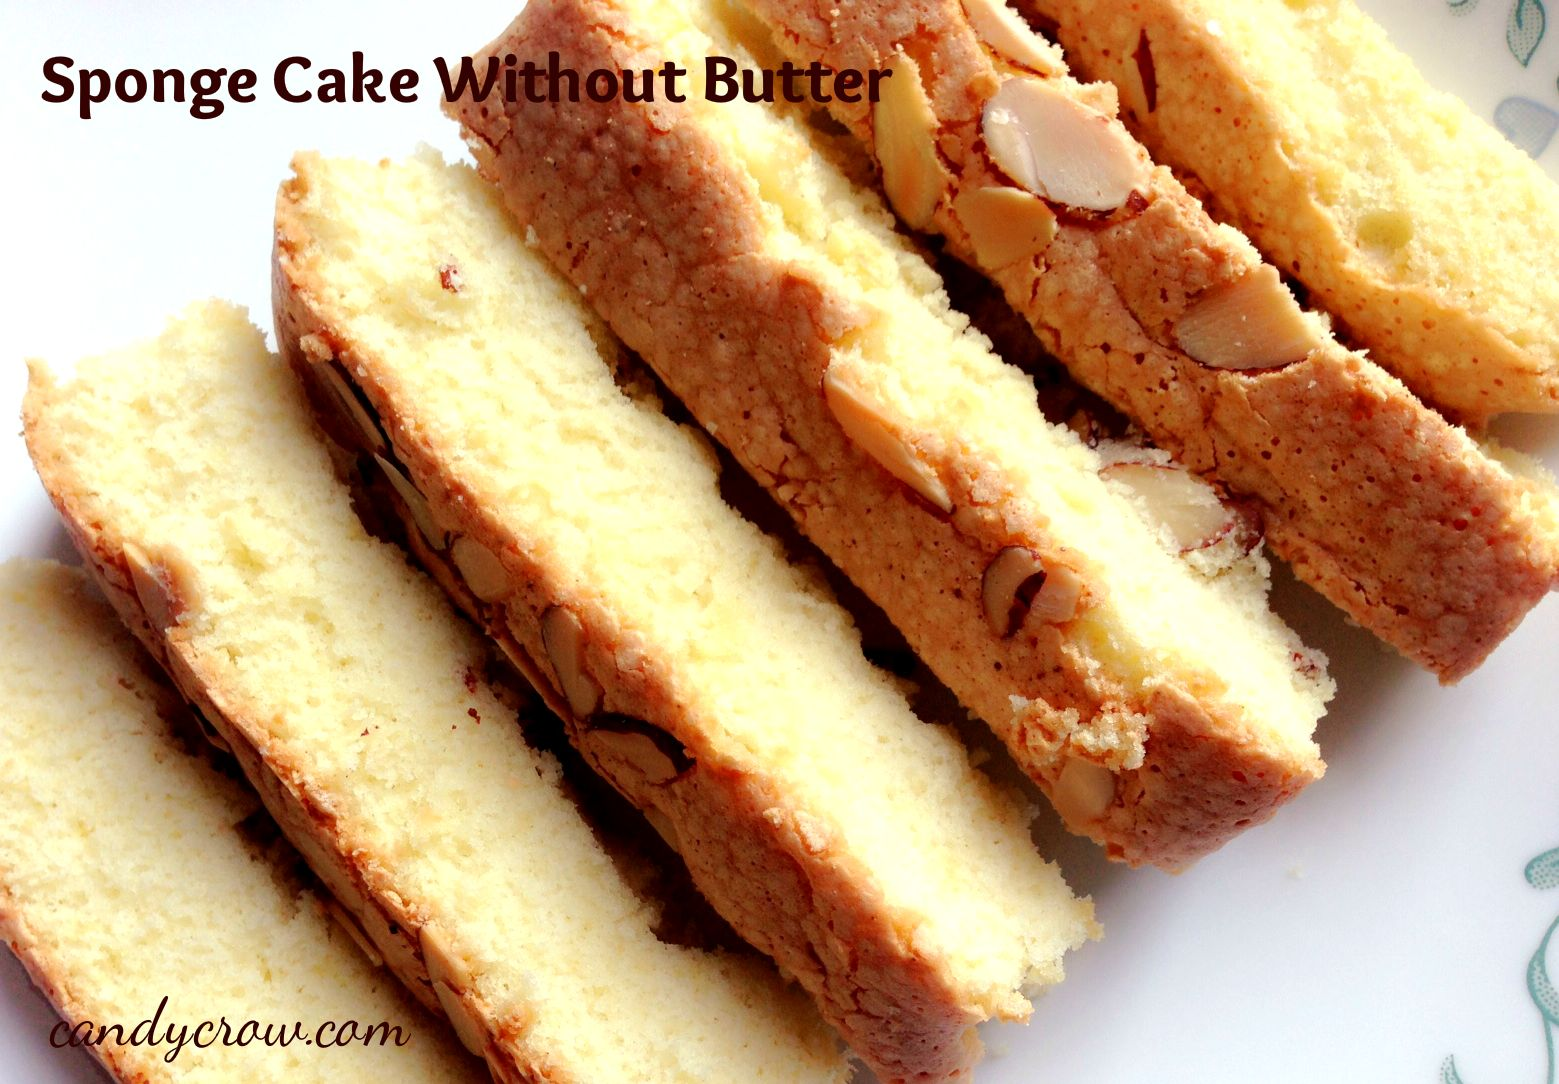 Sponge Cake Without Butter - step by step Recipe